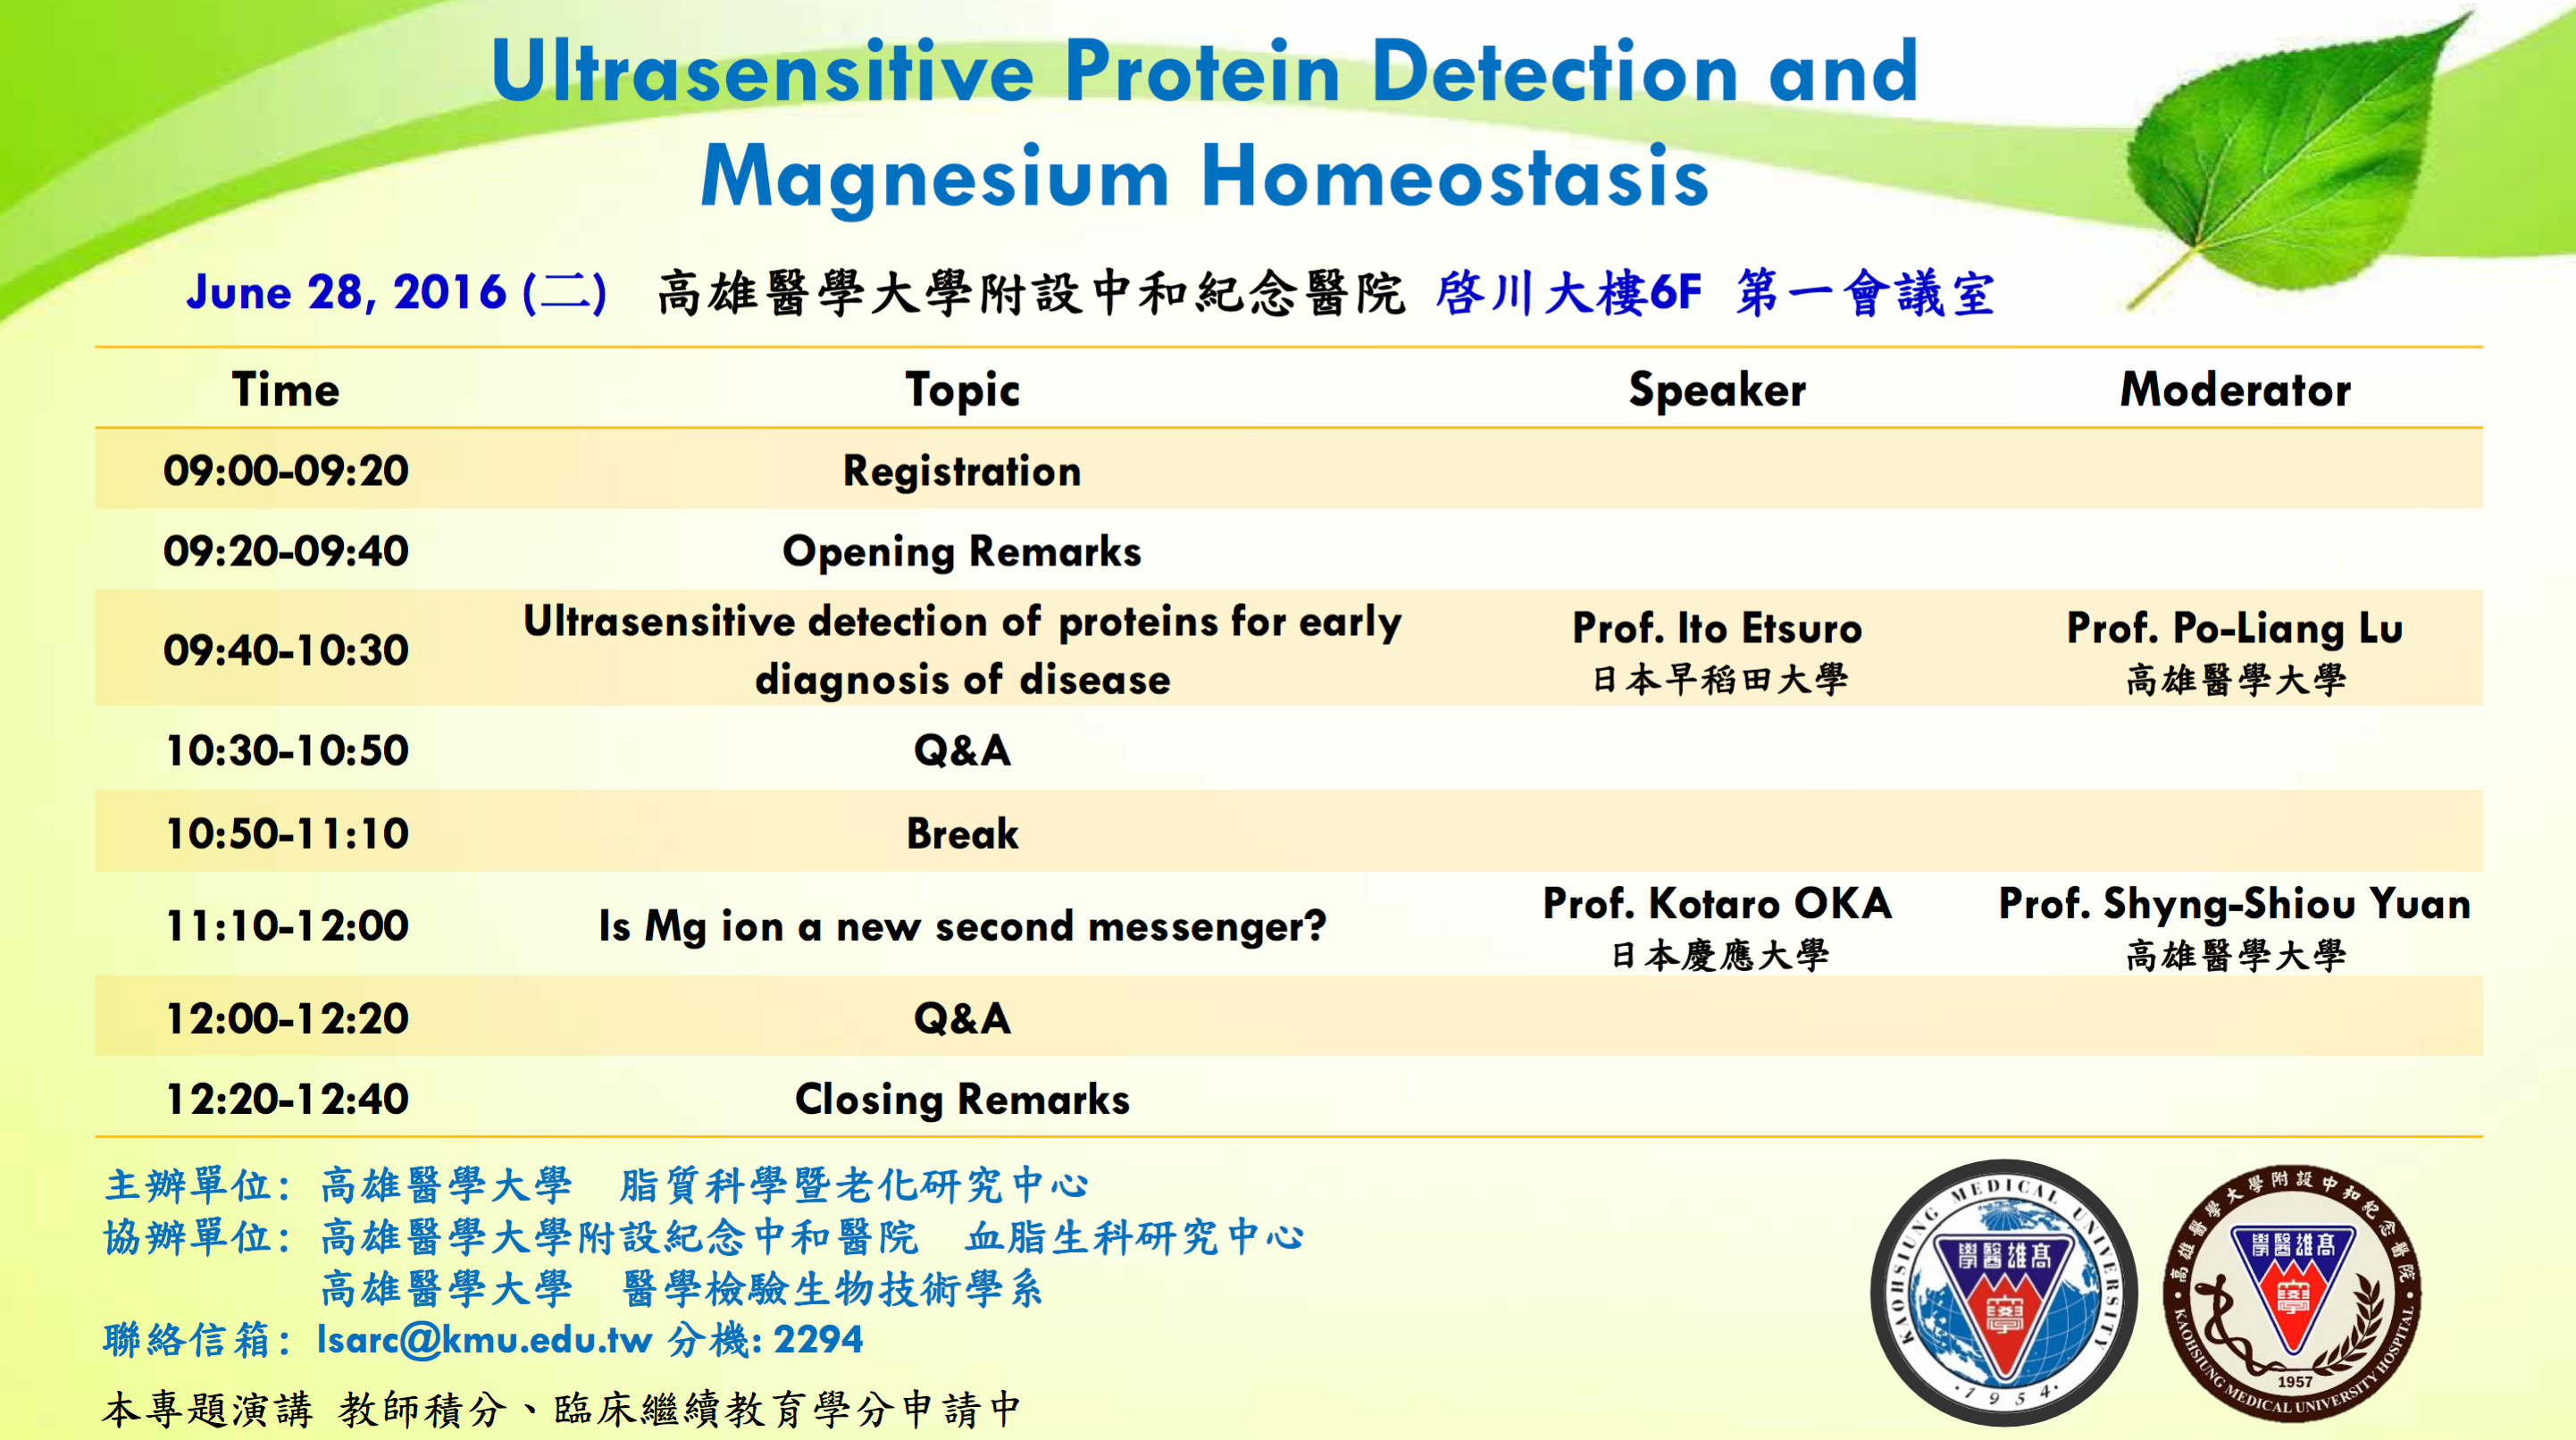 Ultrasensitive_Protein_Detection_and_Magnesium_Homeostasis海報議程_pdf__1_page_.png